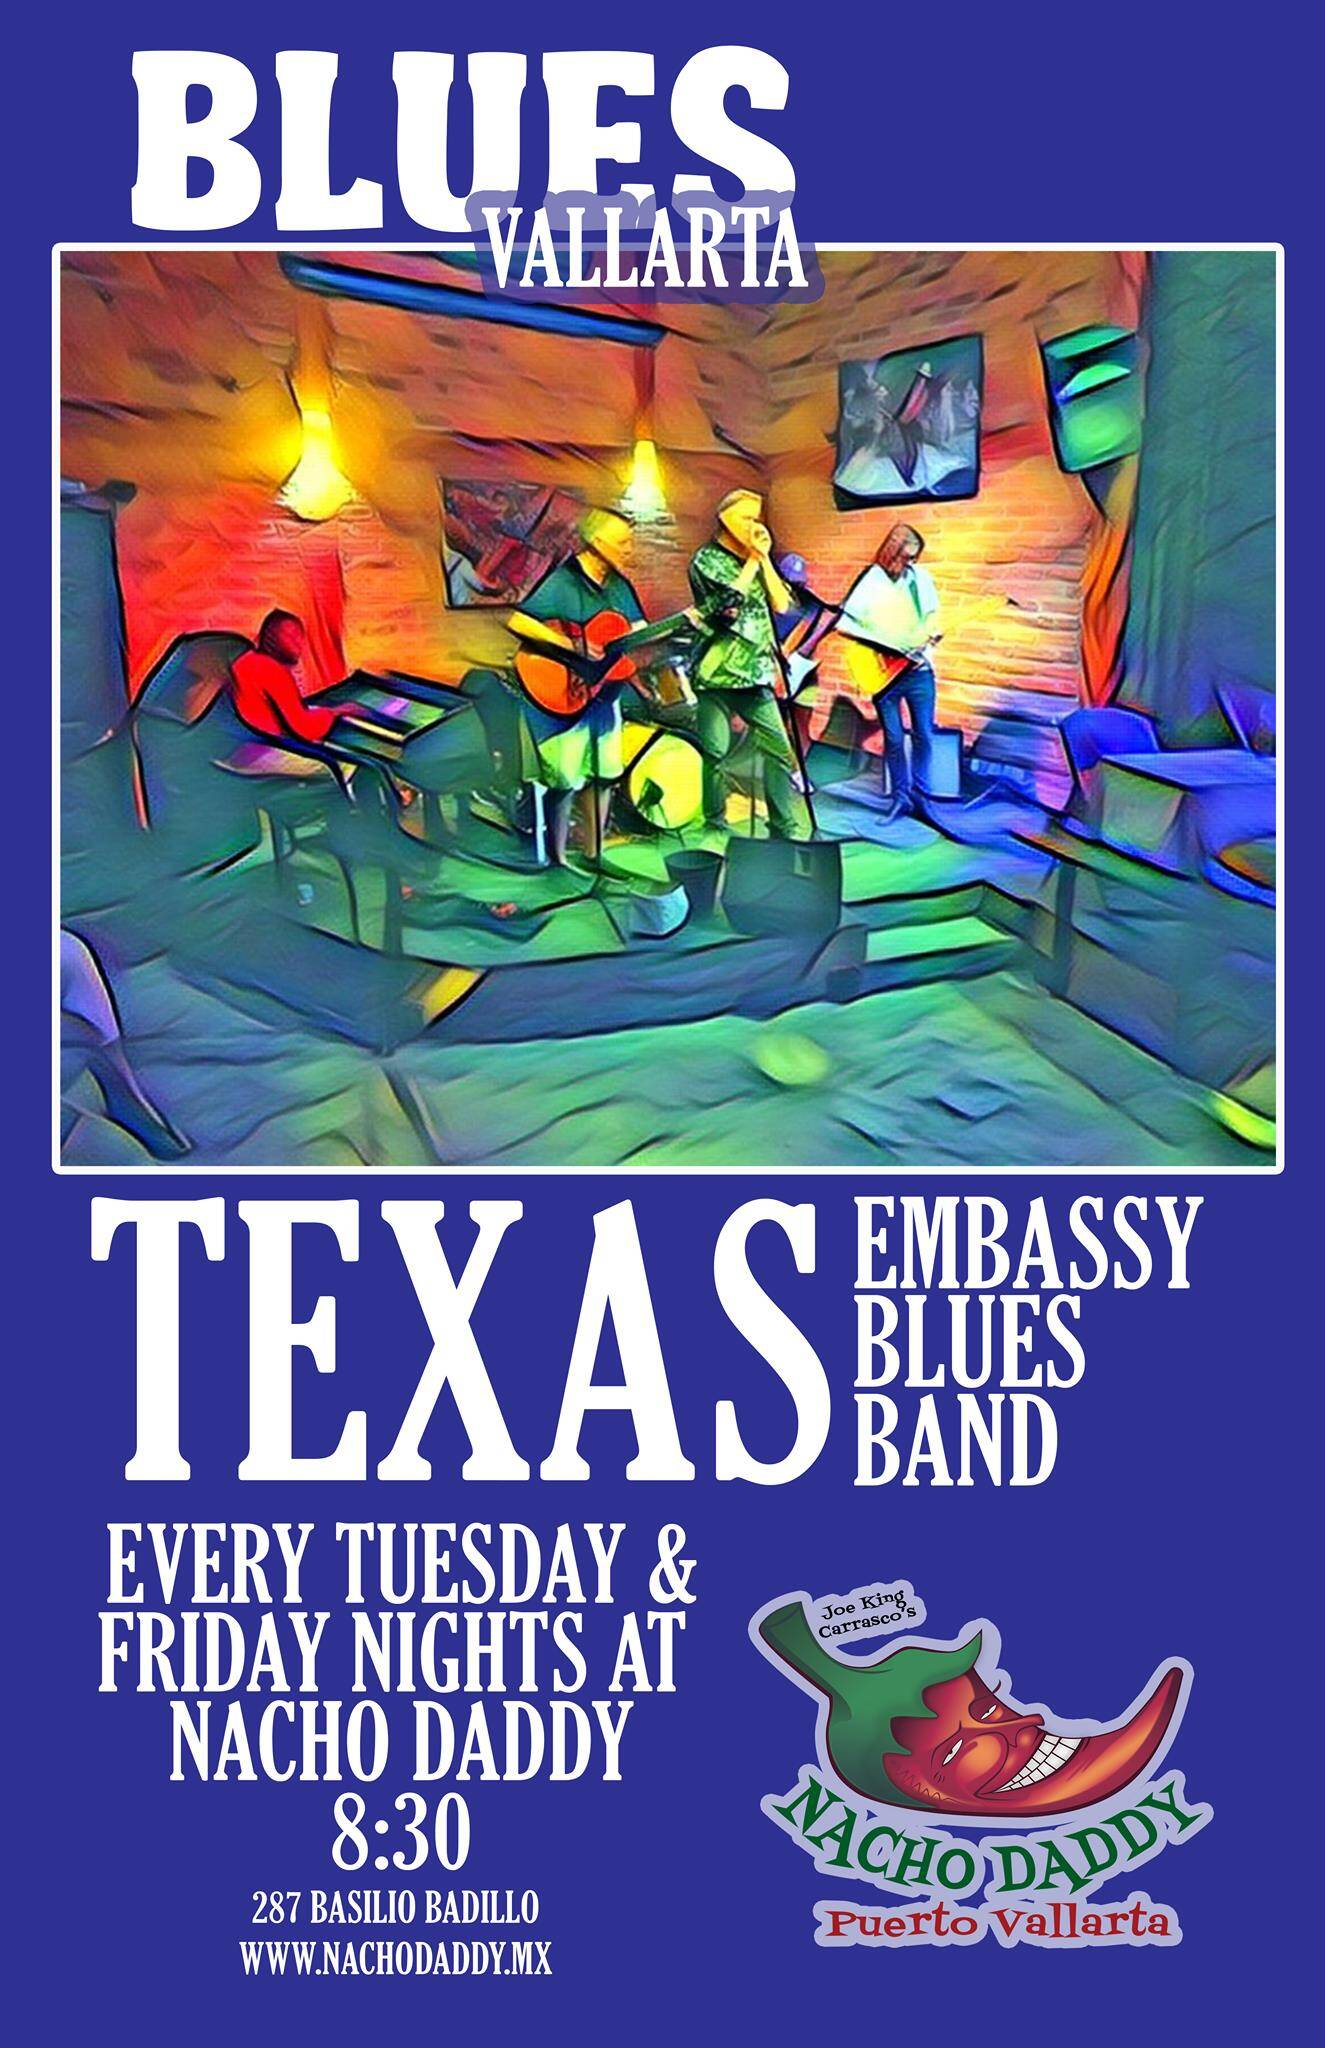 Friday Night Blues with Texas Embassy Blues Band